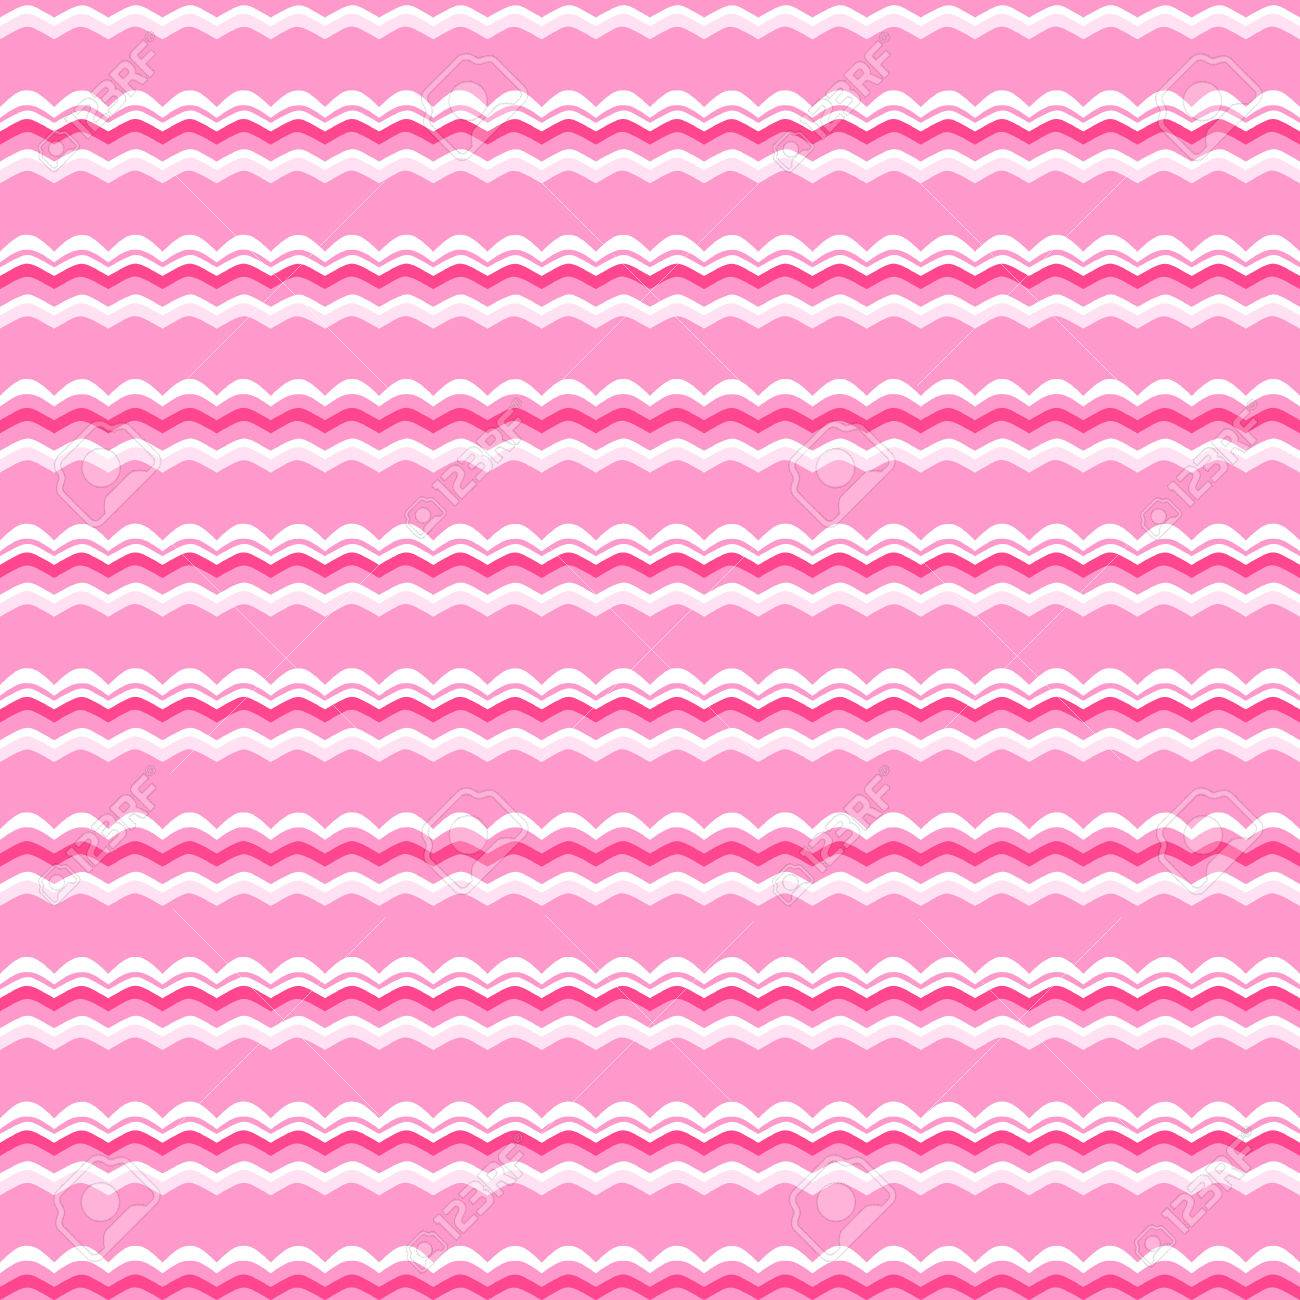 Image of: Unicorn Wallpaper Cute Pink Vector Seamless Pattern Endless Texture For Wallpaper Fill Web Page Background Bdfjade Cute Pink Vector Seamless Pattern Endless Texture For Wallpaper